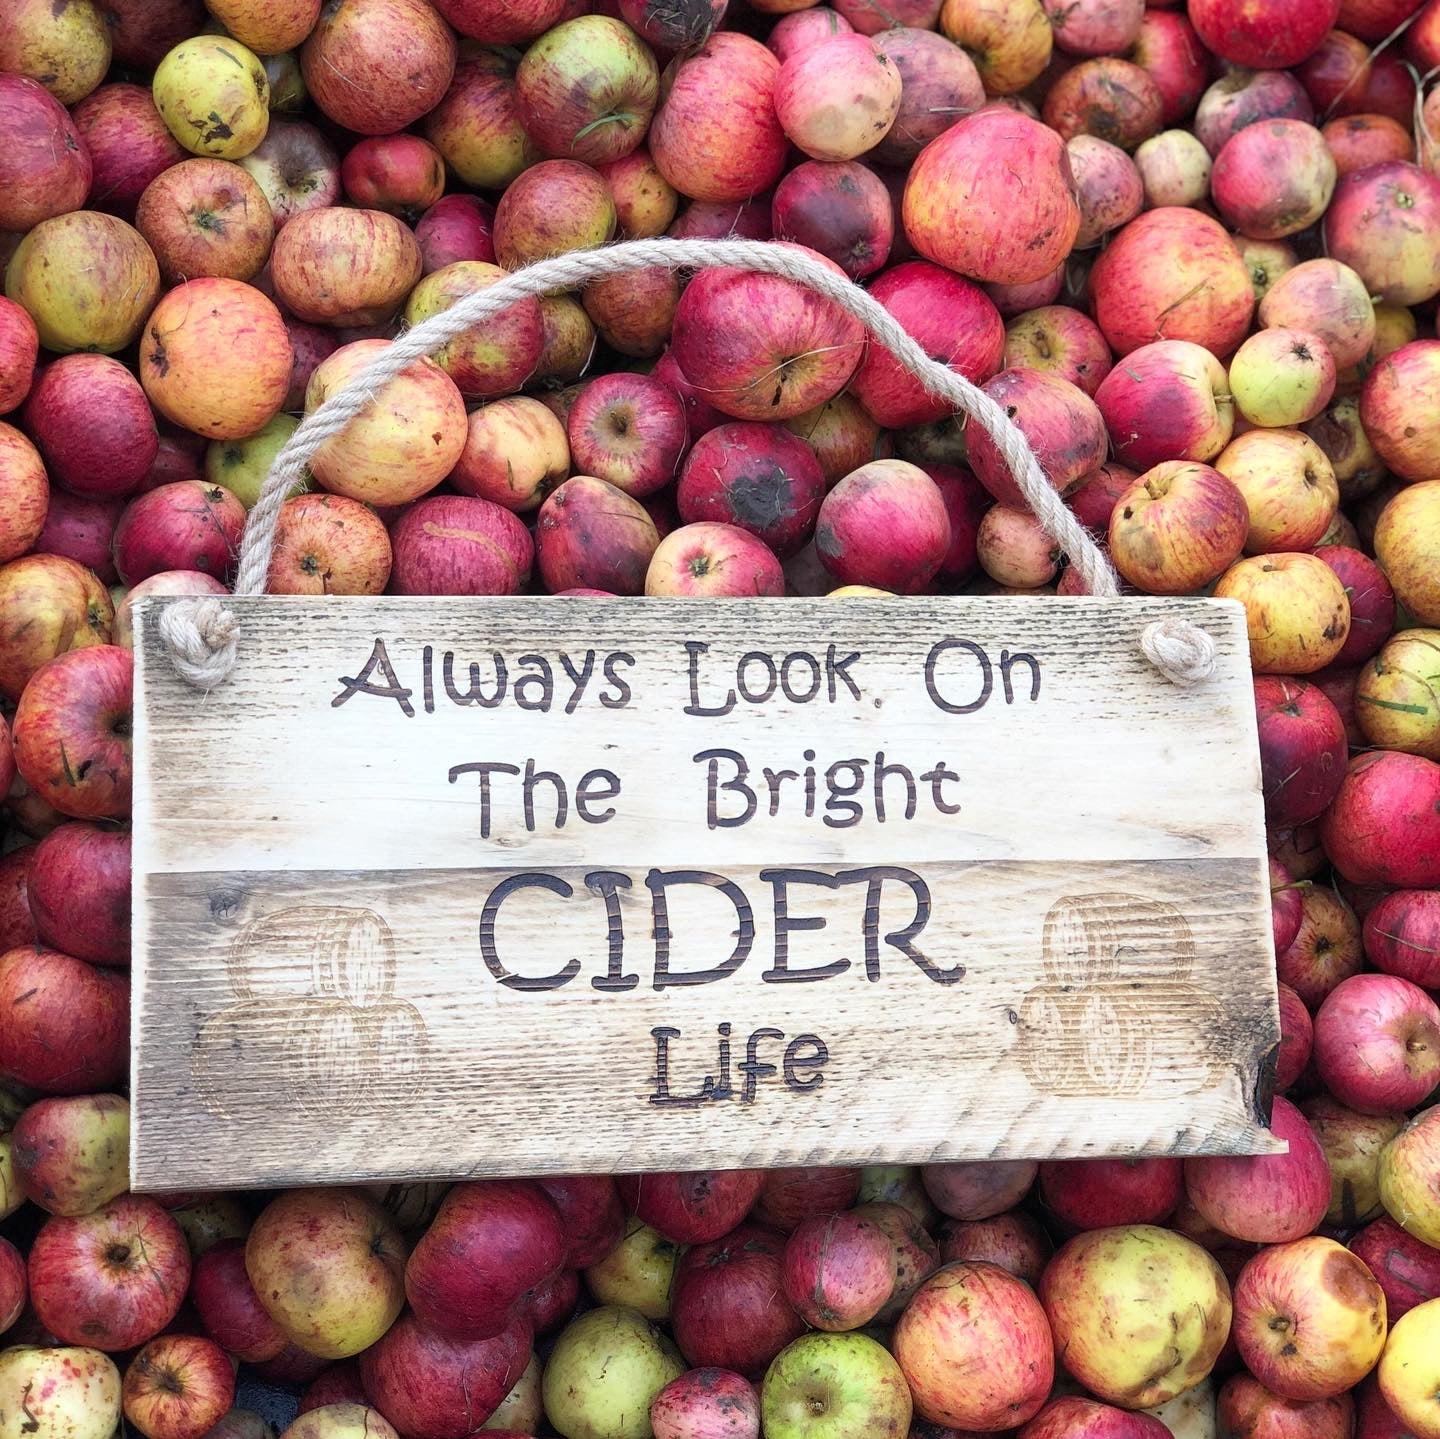 'ALWAYS LOOK ON THE BRIGHT CIDER LIFE' - Wooden Plaque